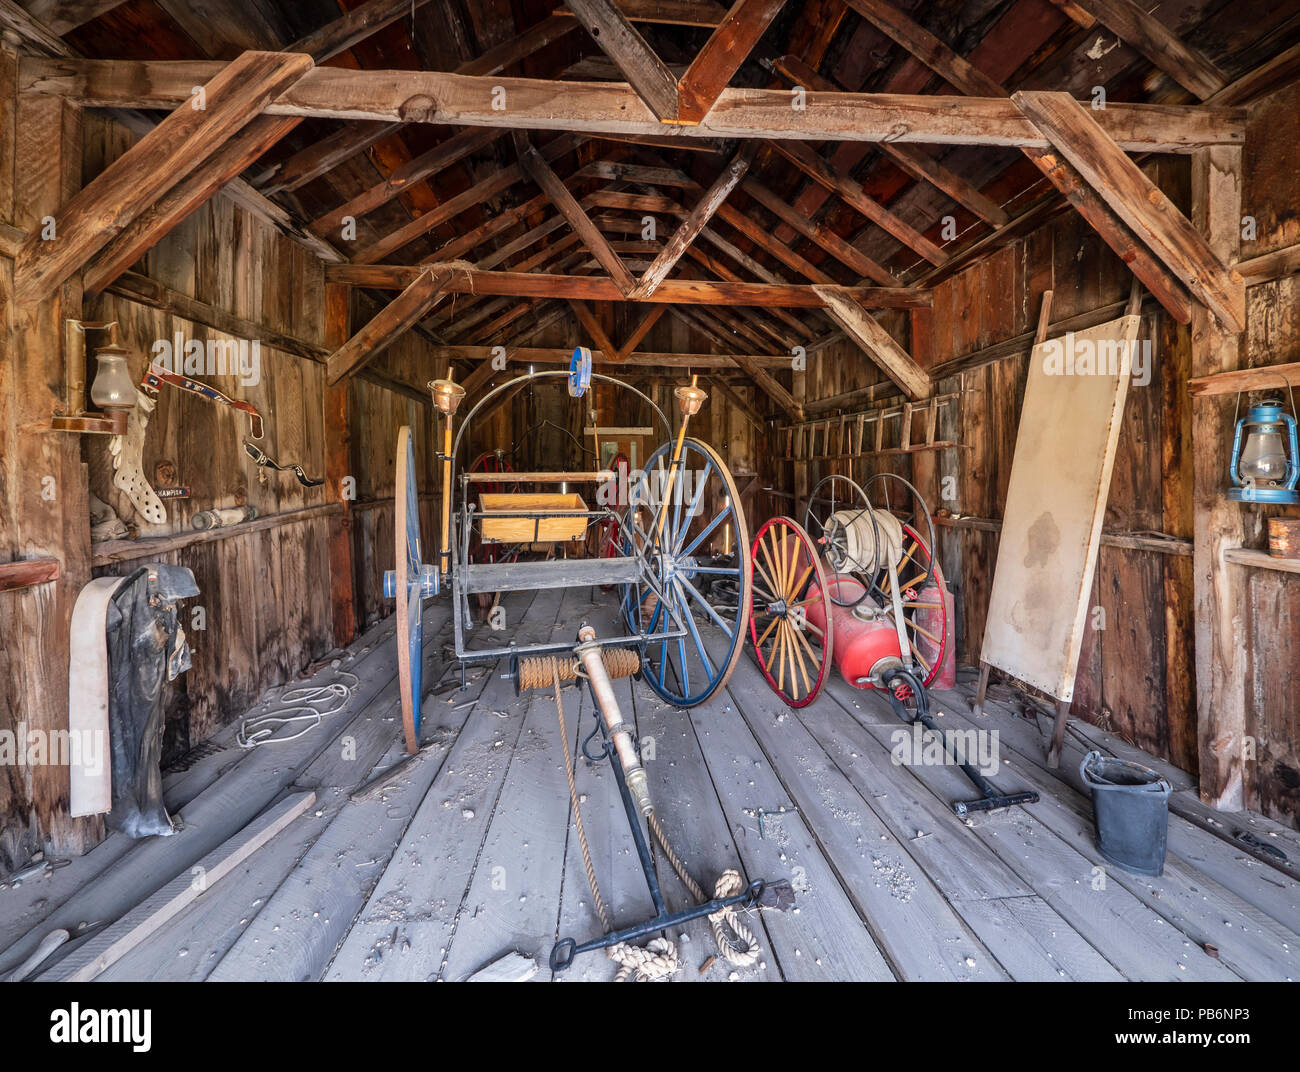 Inside the Firehouse, Bodie ghost town, Bodie State Historic Park, California. - Stock Image